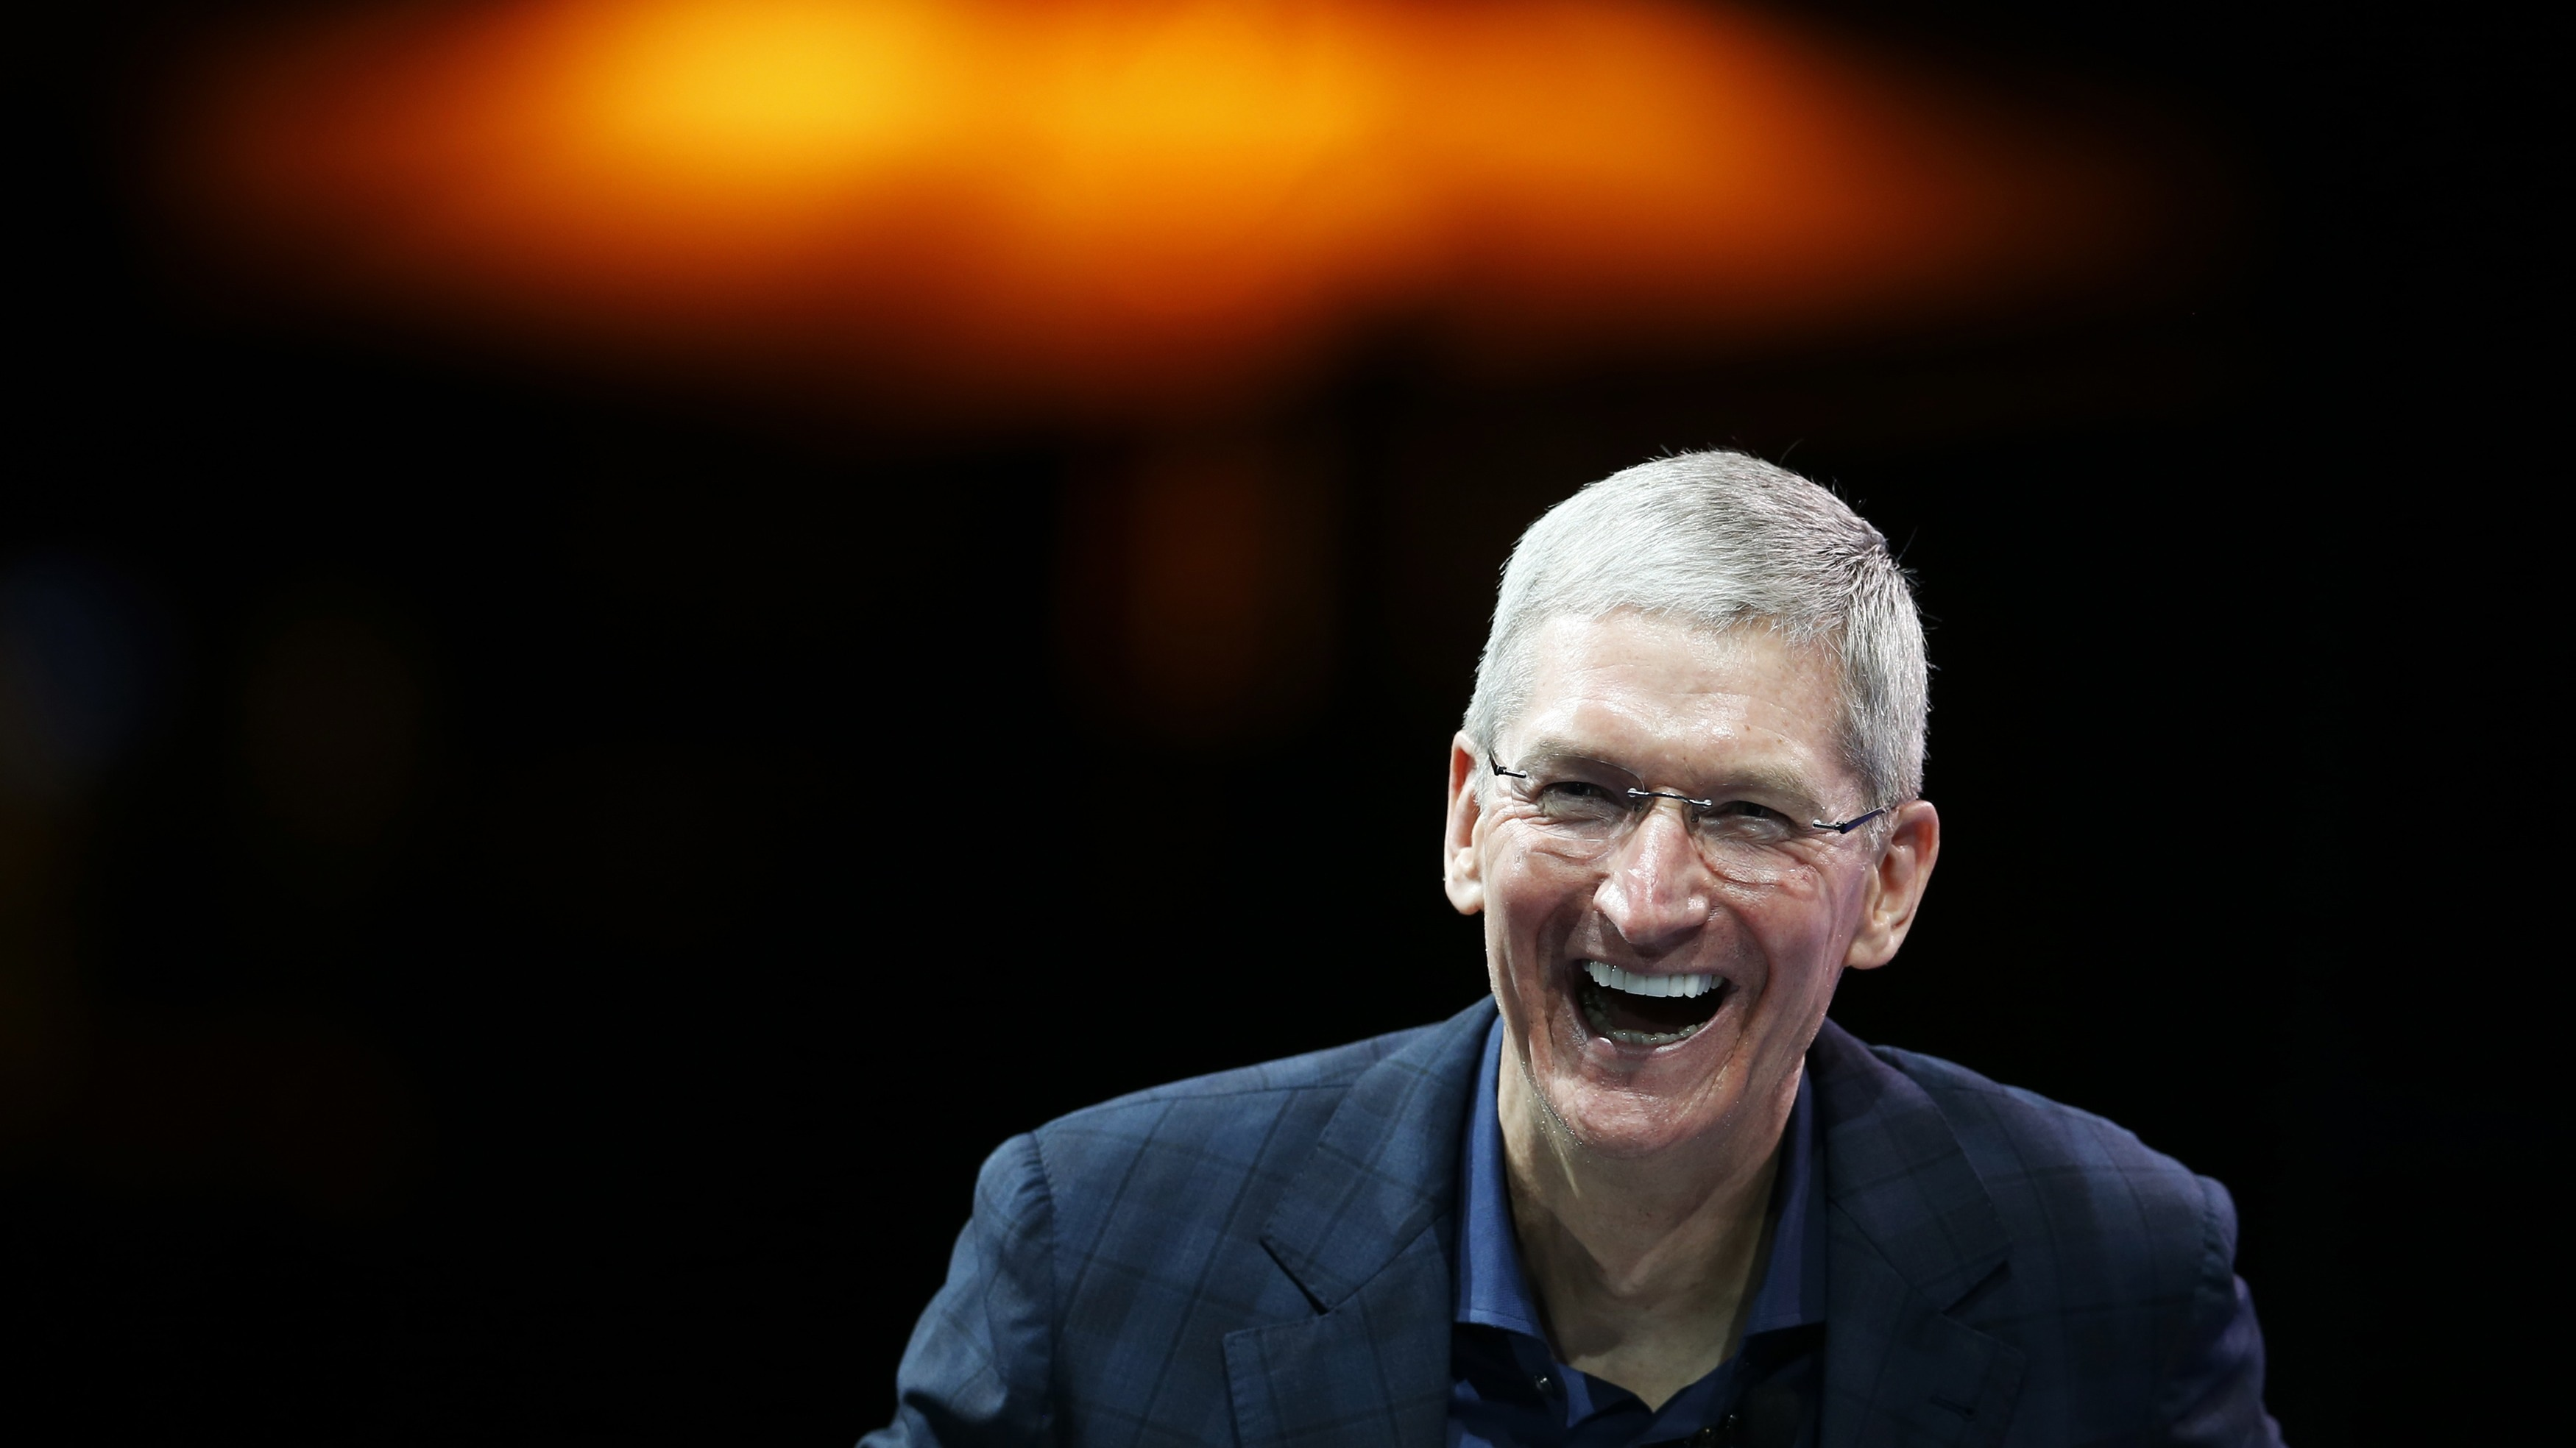 Apple CEO Tim Cook speaks at the WSJD Live conference in Laguna Beach, California October 27, 2014.  REUTERS/Lucy Nicholson (UNITED STATES - Tags: BUSINESS SCIENCE TECHNOLOGY) - RTR4BTRQ